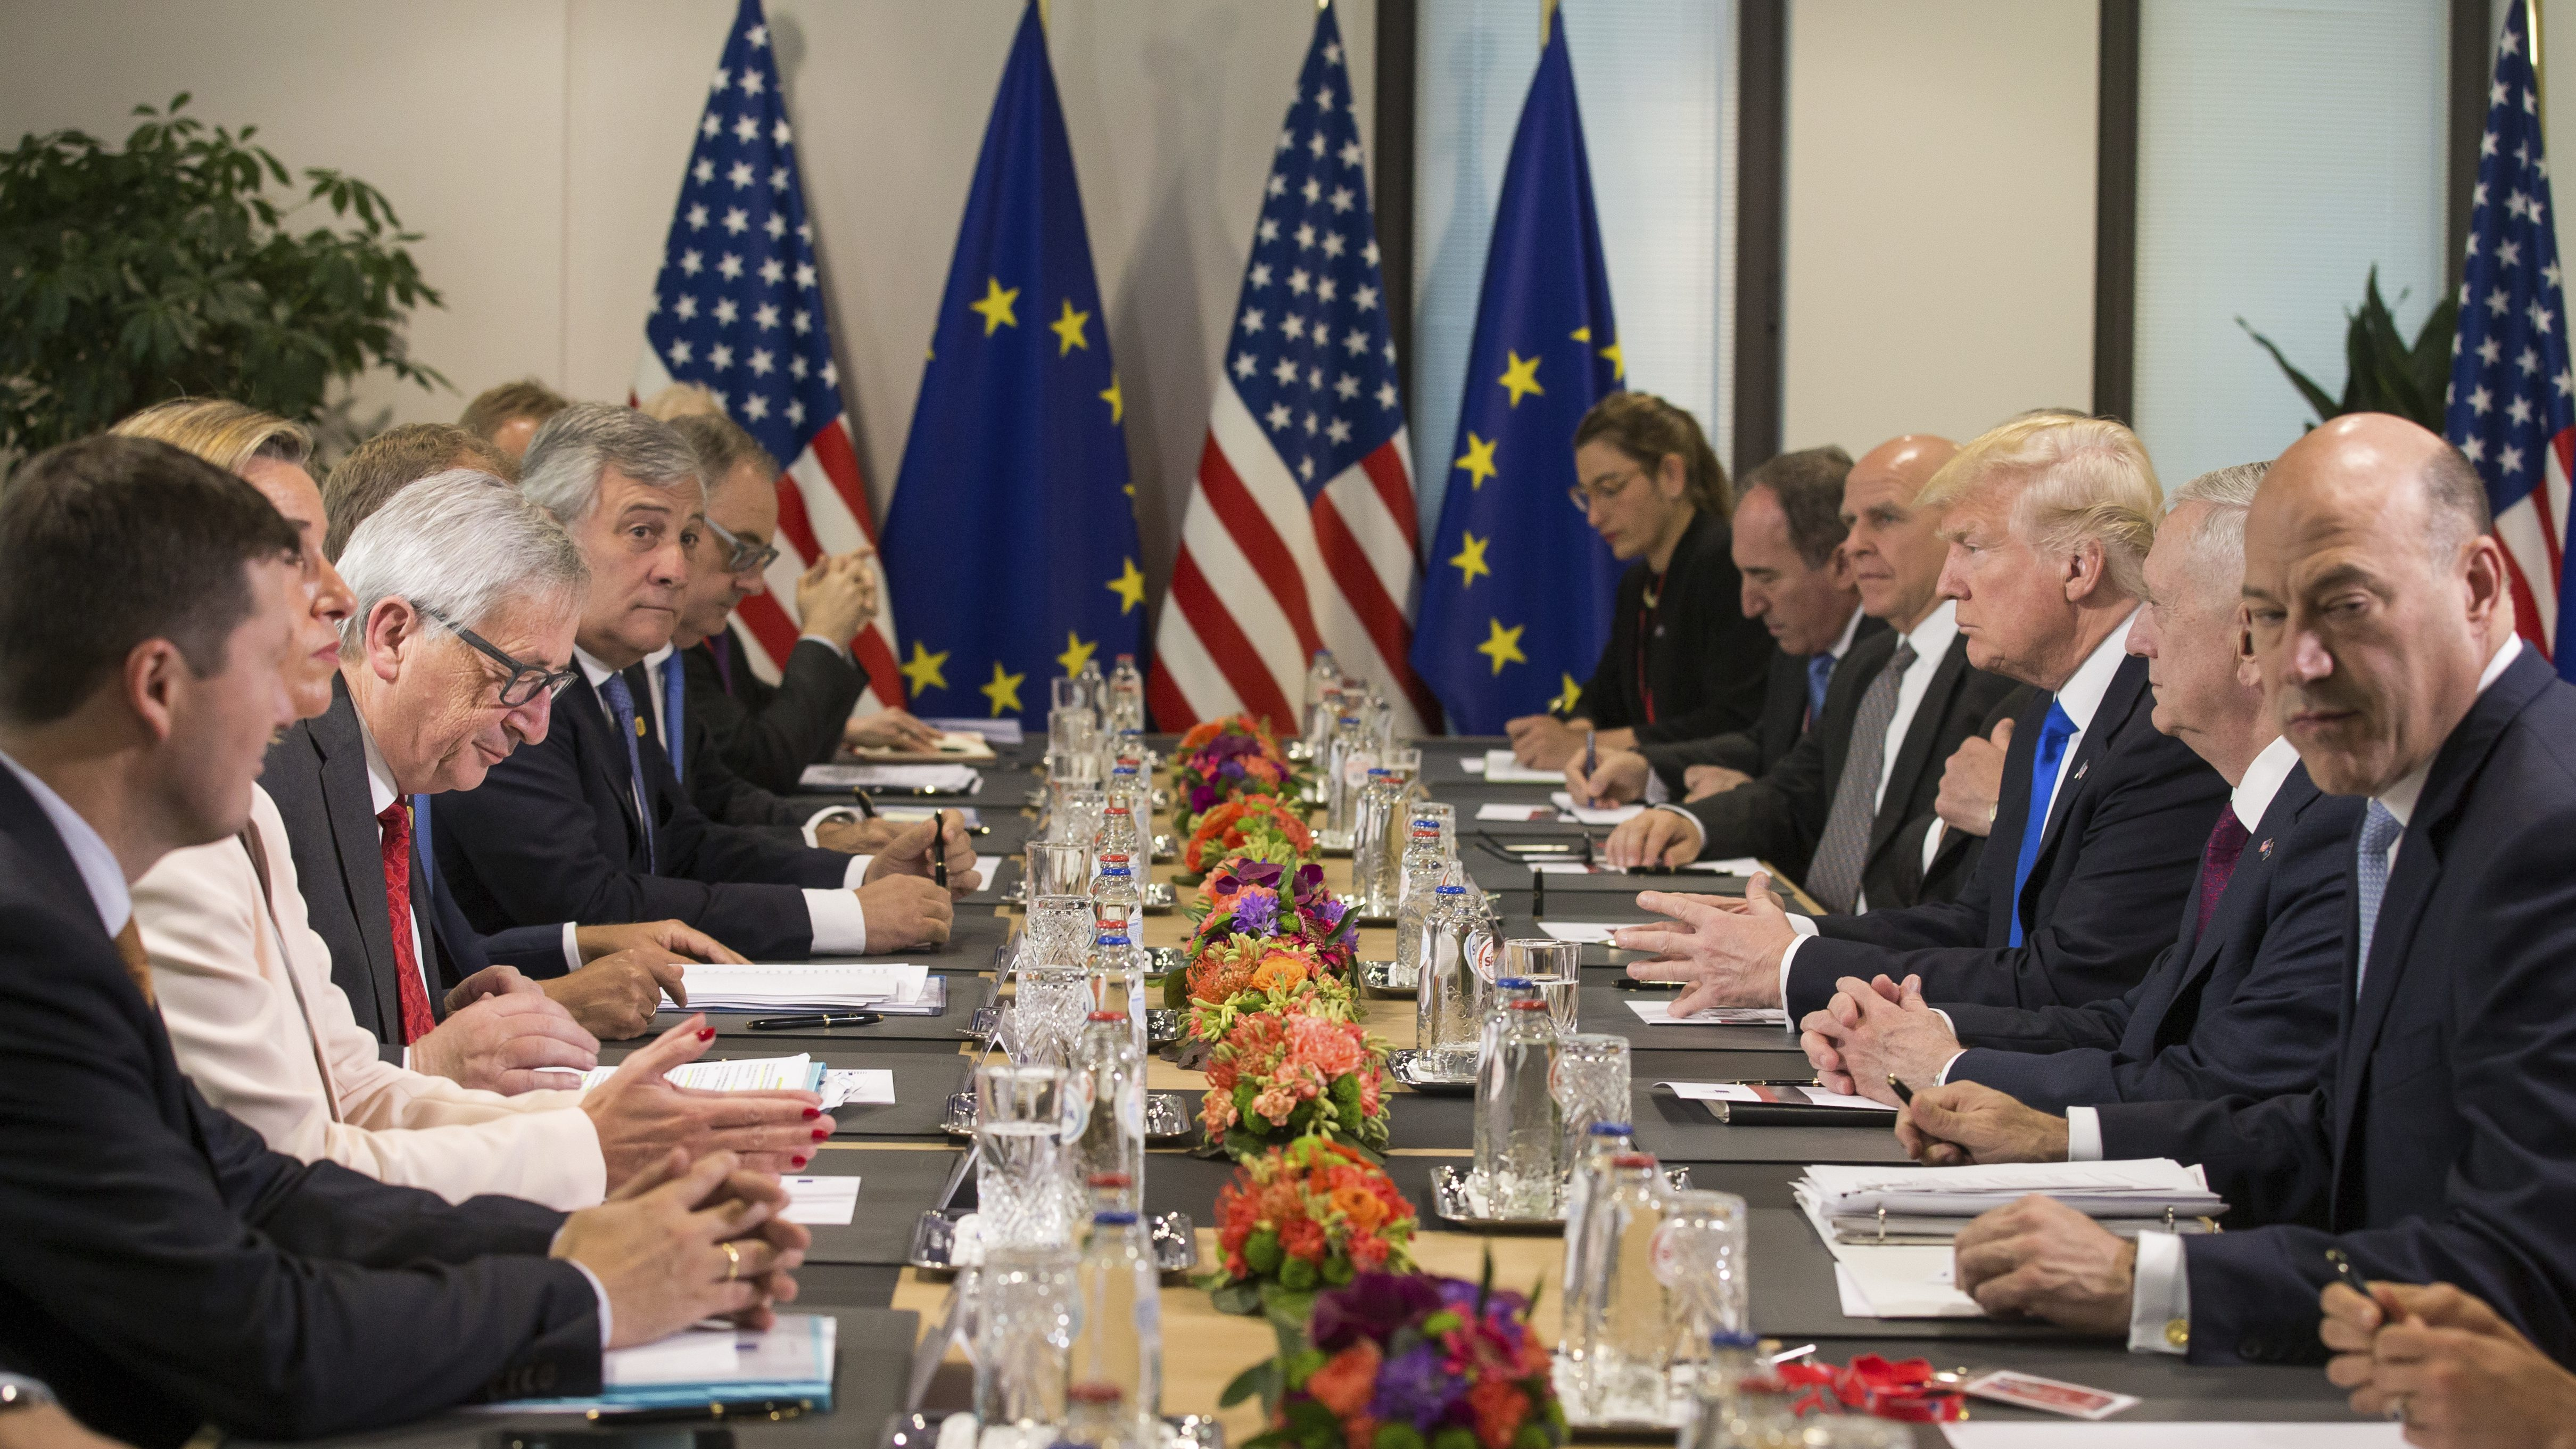 US President Donald Trump, 3rd right,   US Defense Secretary, James Mattis, 2nd right, attend a meeting with EU leaders  Federica Mogherini, the EU High representative for foreign policy, partially seen 2nd left, EU Commission President Jean-Claude Juncker, 3rd left, along with other officials at the European Council, in Brussels, Belgium Thursday May 25, 2017.  US President Donald Trump arrived in Belgium Wednesday evening and will attend a NATO summit as well as meet EU and Belgian officials.   (Stephanie Lecocq/Pool via AP)